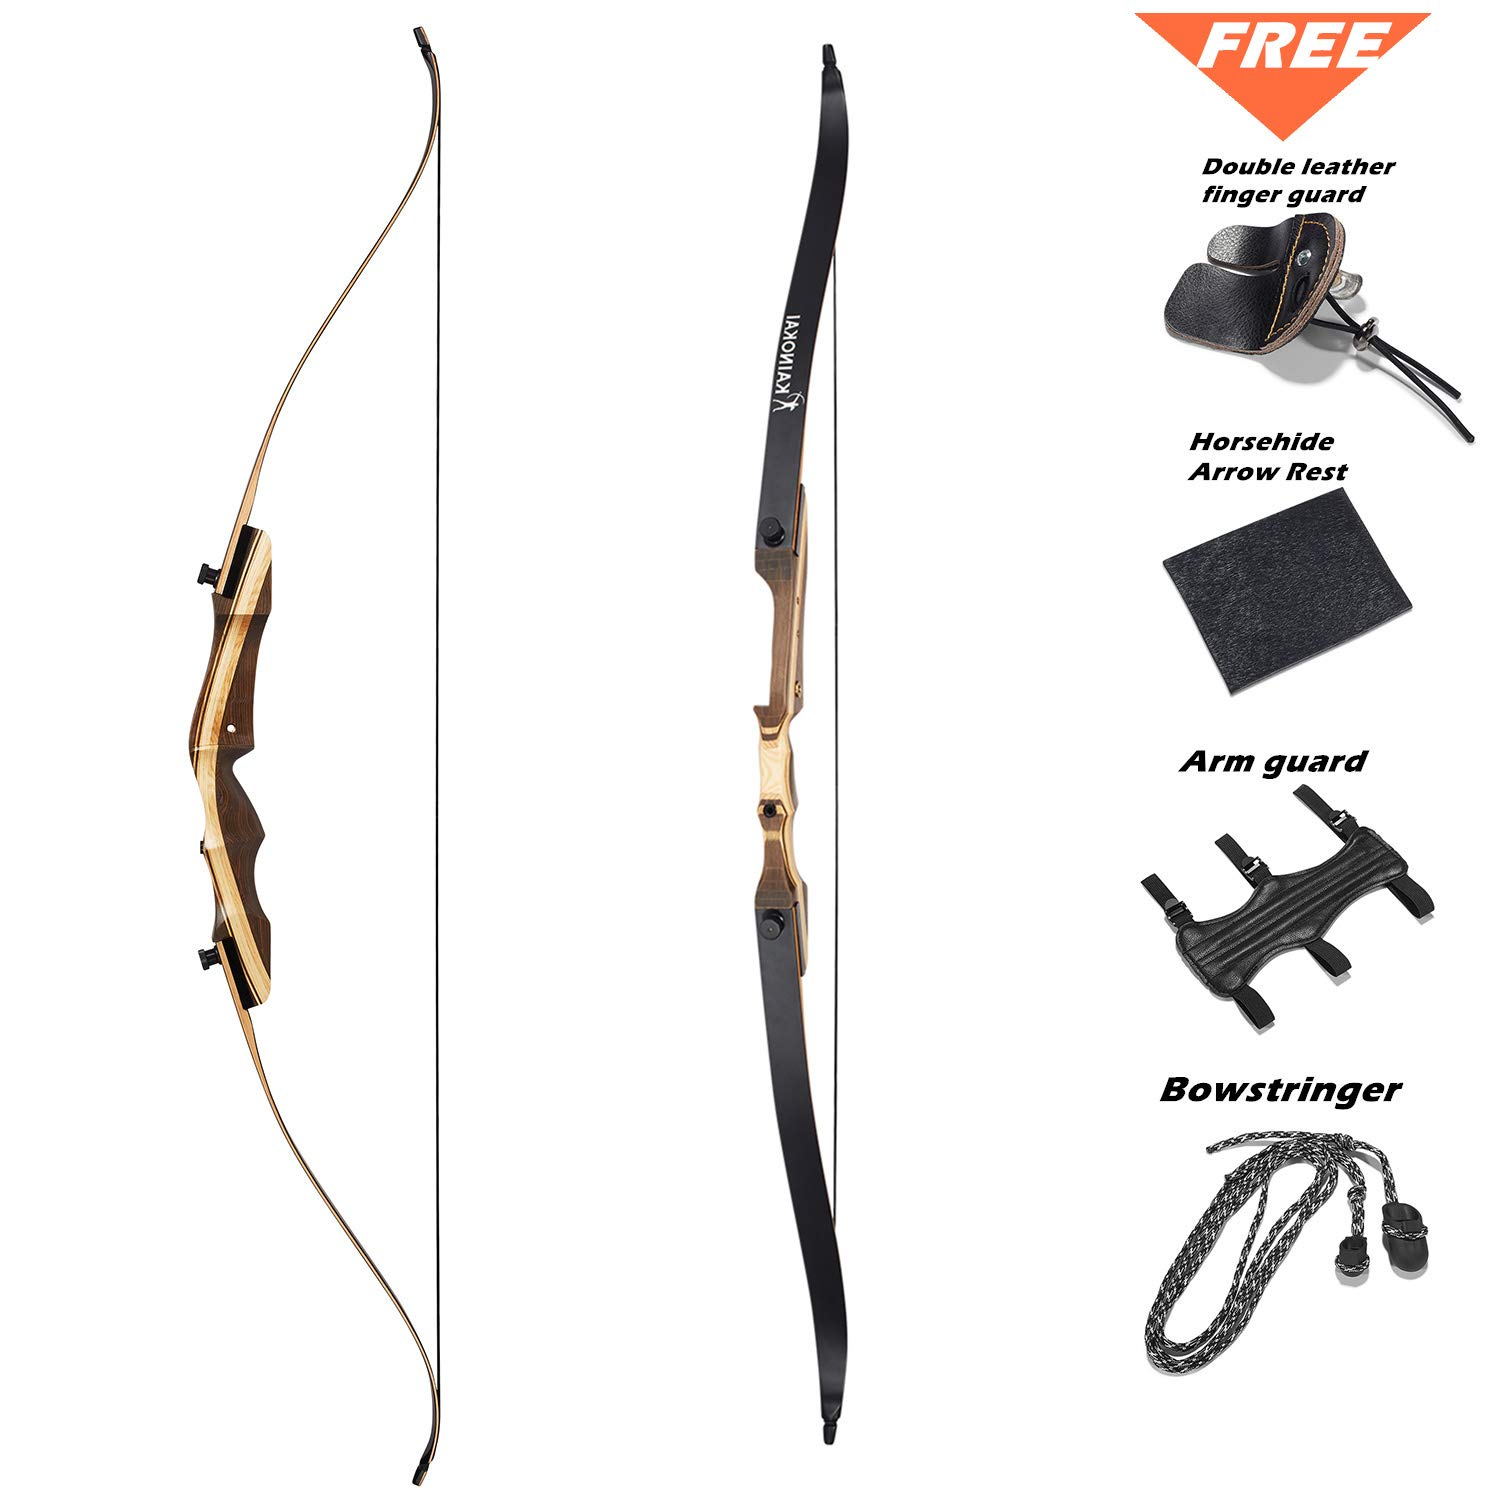 KAINOKAI 62'' Takedown Recurve Bow,Right & Left Hand,Hunting Recurve Archery Bow for Teens and Adults,15-60 lbs (Left Hand, 35lb) by KAINOKAI